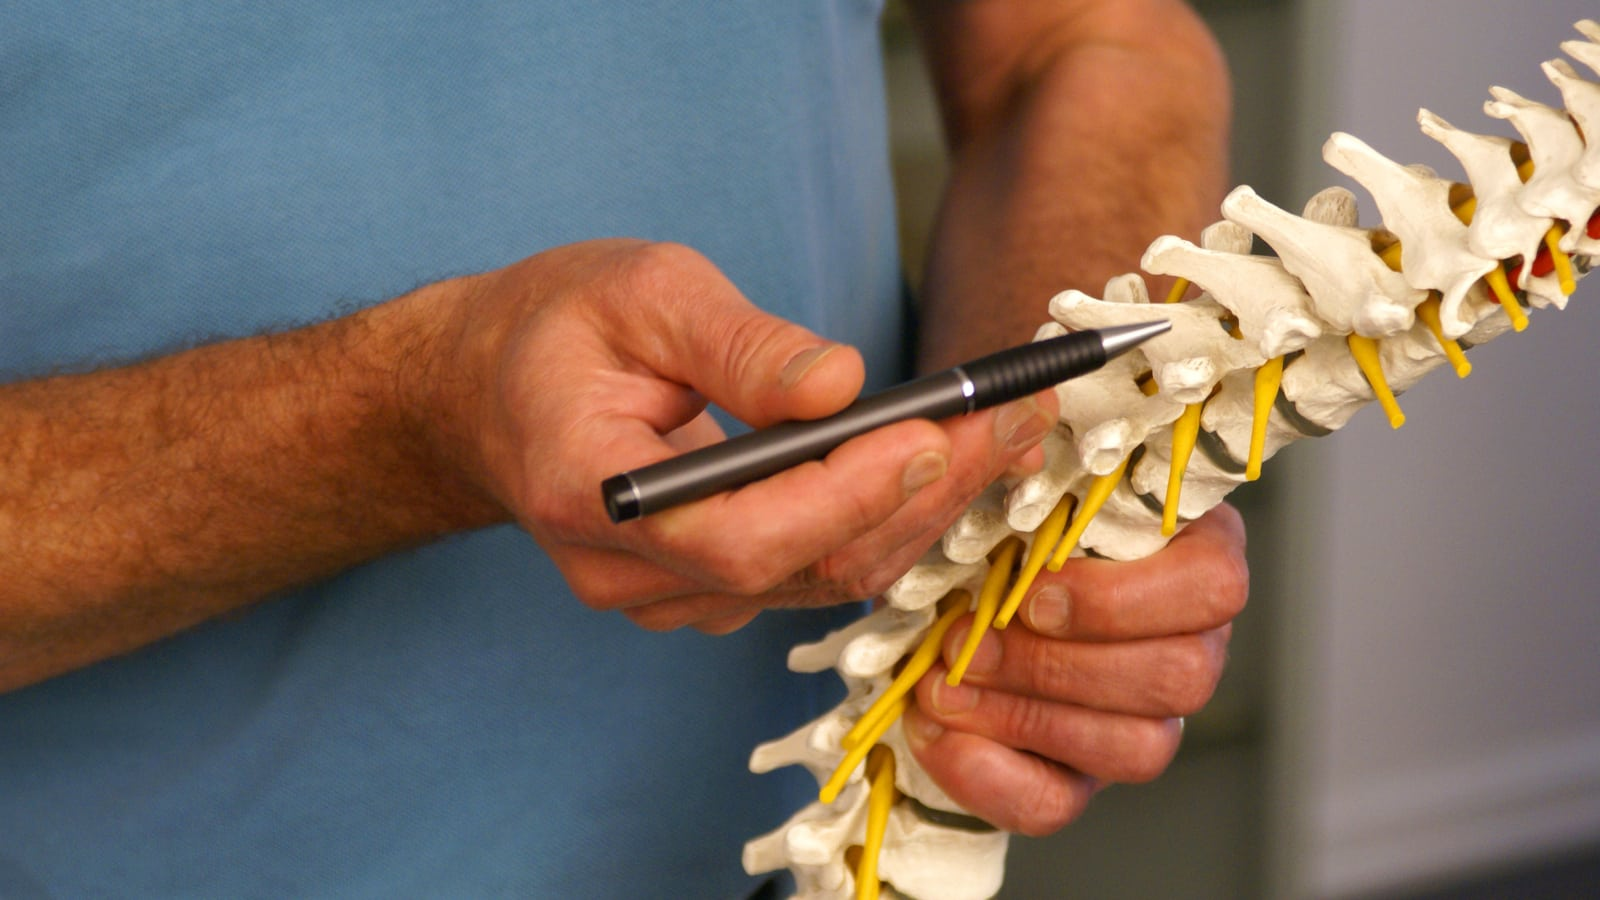 Doctor Spinal Cord Injury Stock Photo